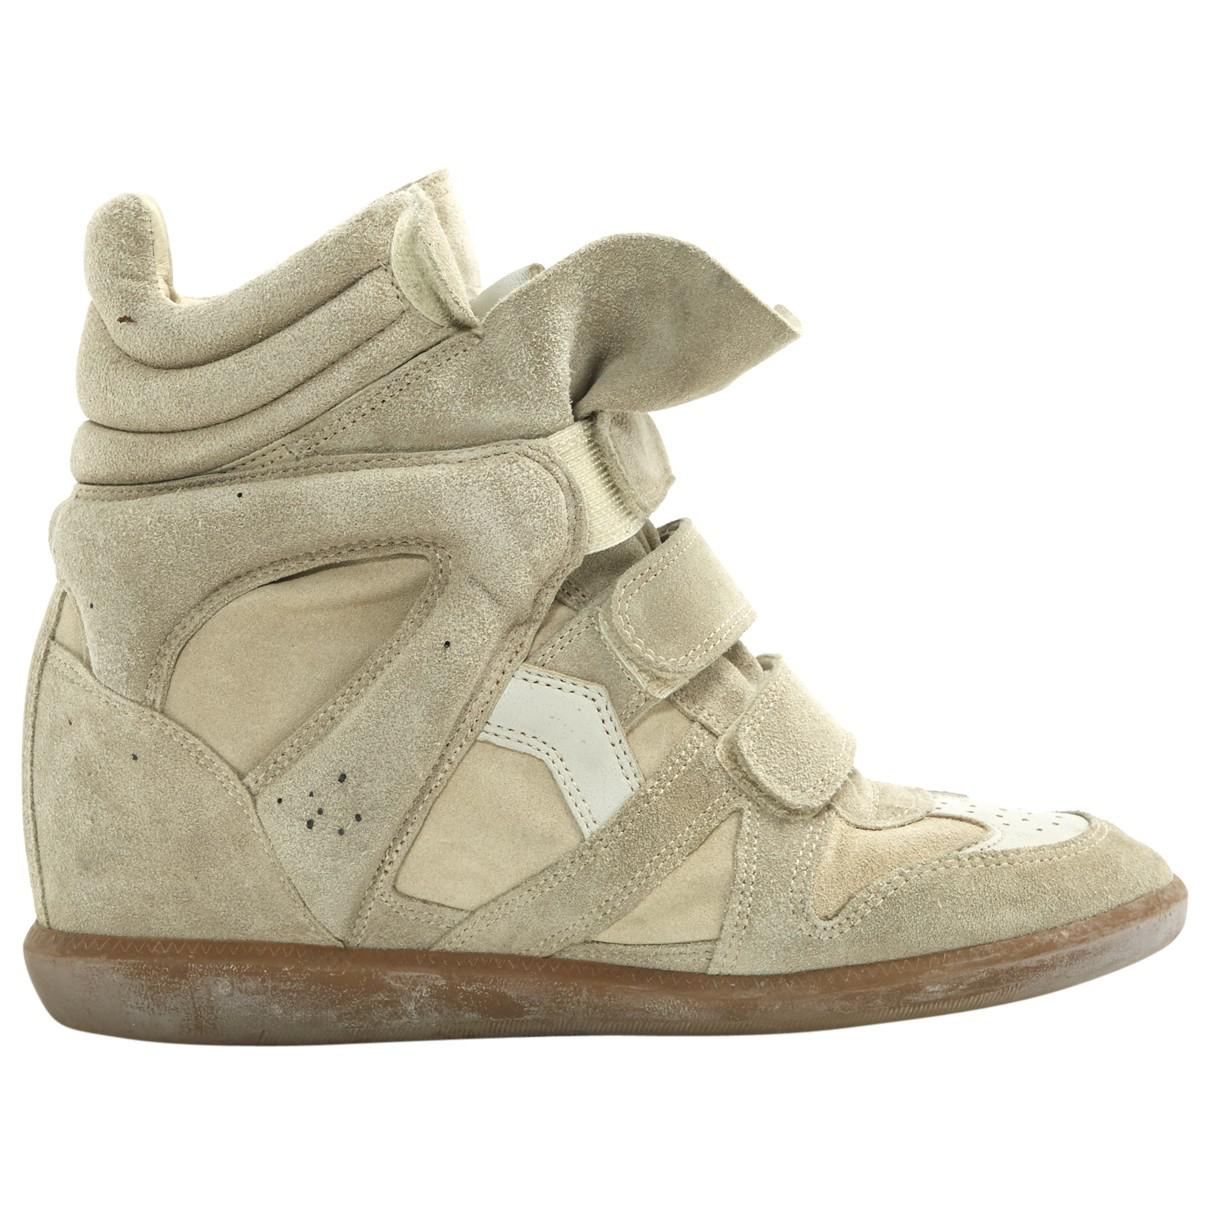 Pre-owned - Beckett cloth trainers Isabel Marant 5CYrD